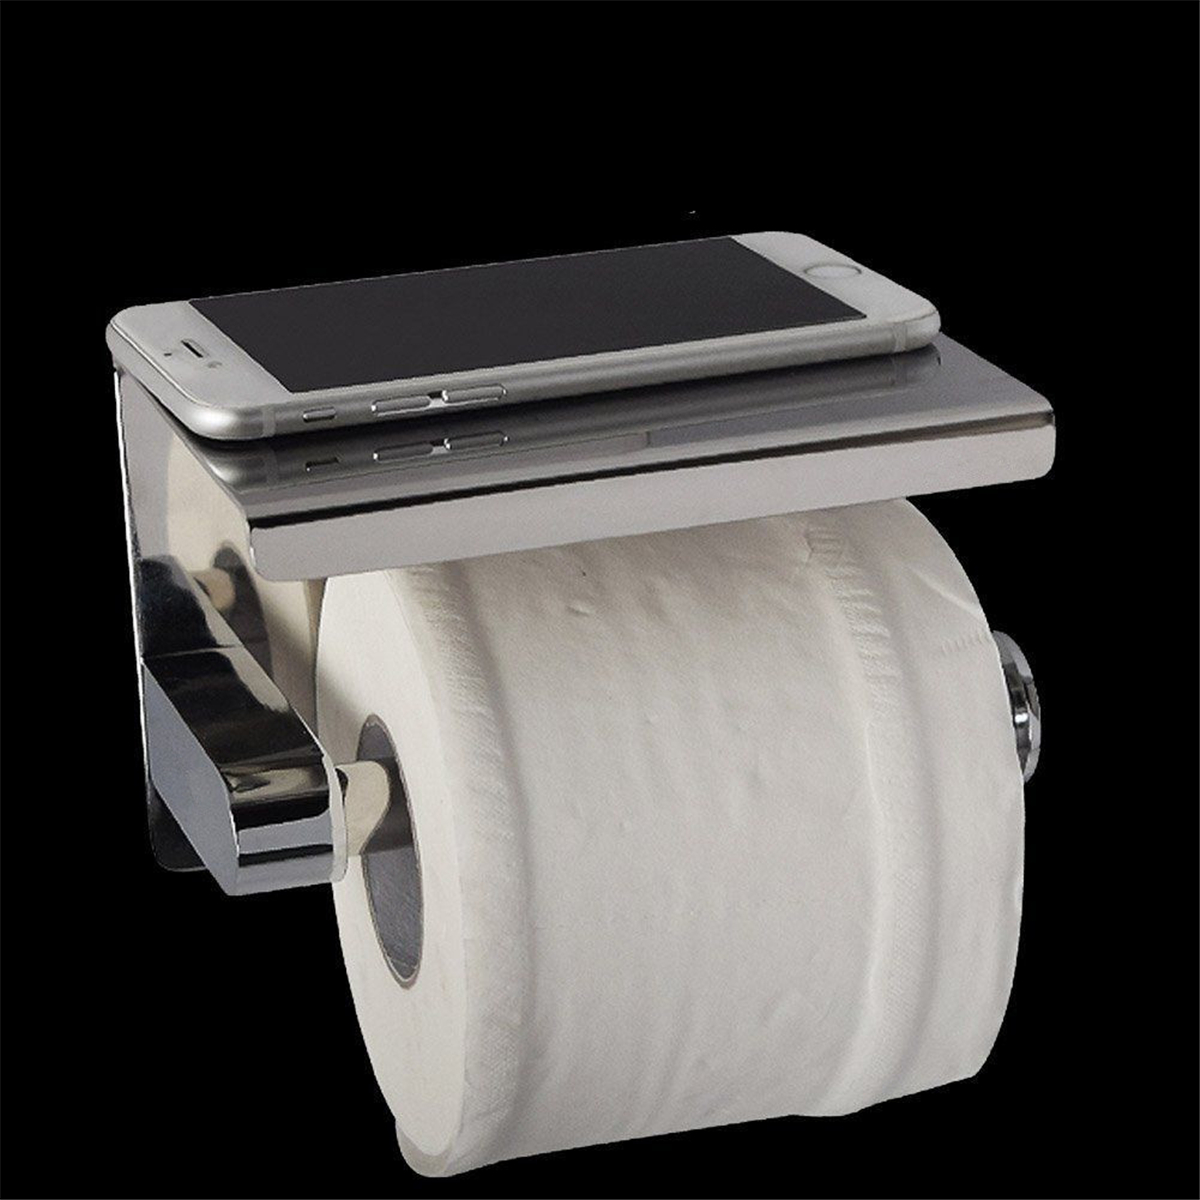 304 Stainless Steel Toilet Paper Roll Shelf Holder Bath Accessory Tissue Wall Mounted Storage